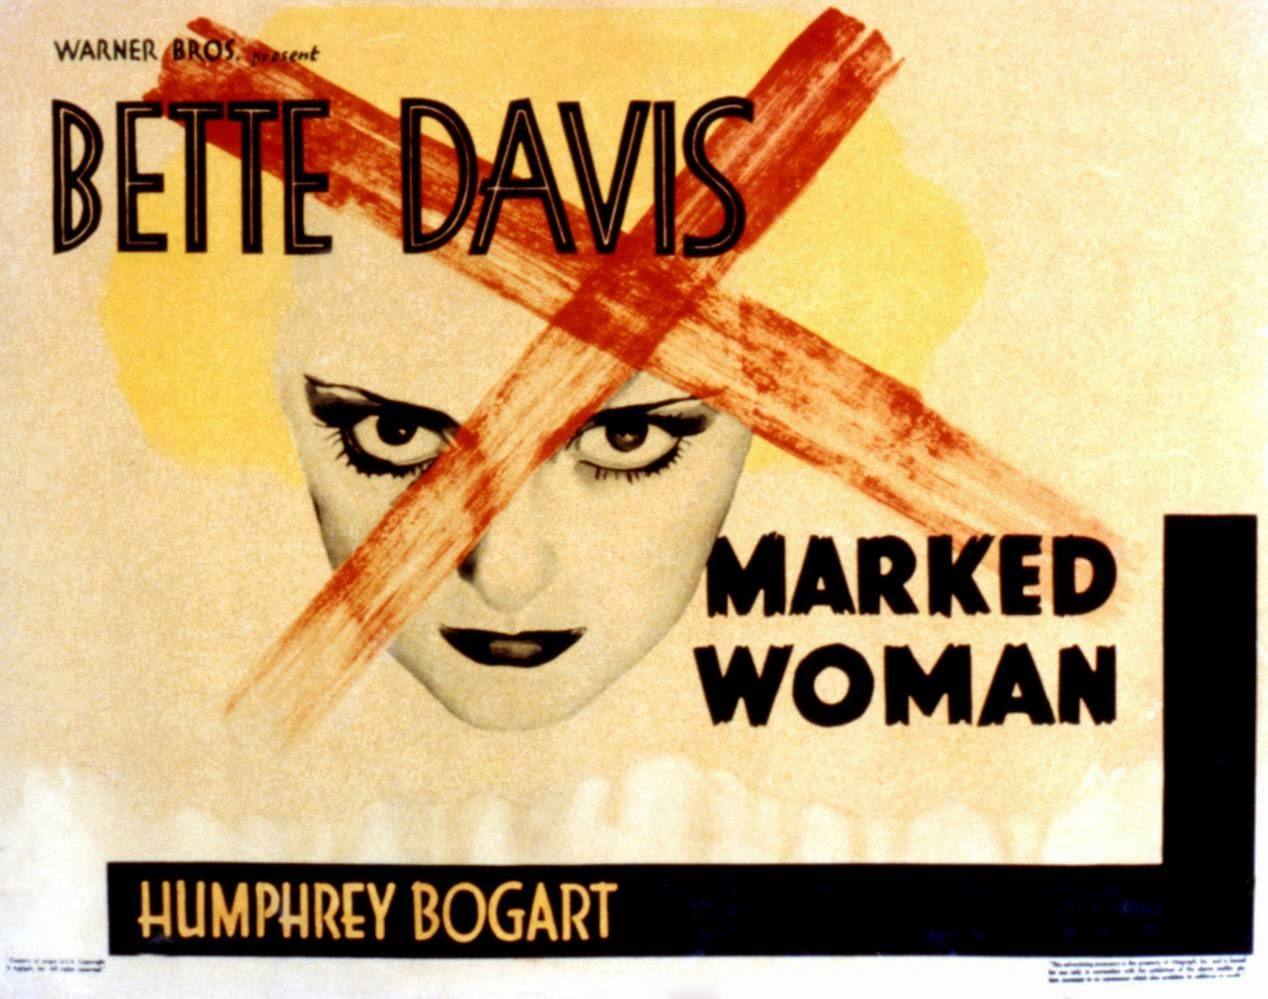 marked woman Find trailers, reviews, synopsis, awards and cast information for marked woman (1937) - lloyd bacon on allmovie - bette davis' famous walk-out from her home studio.